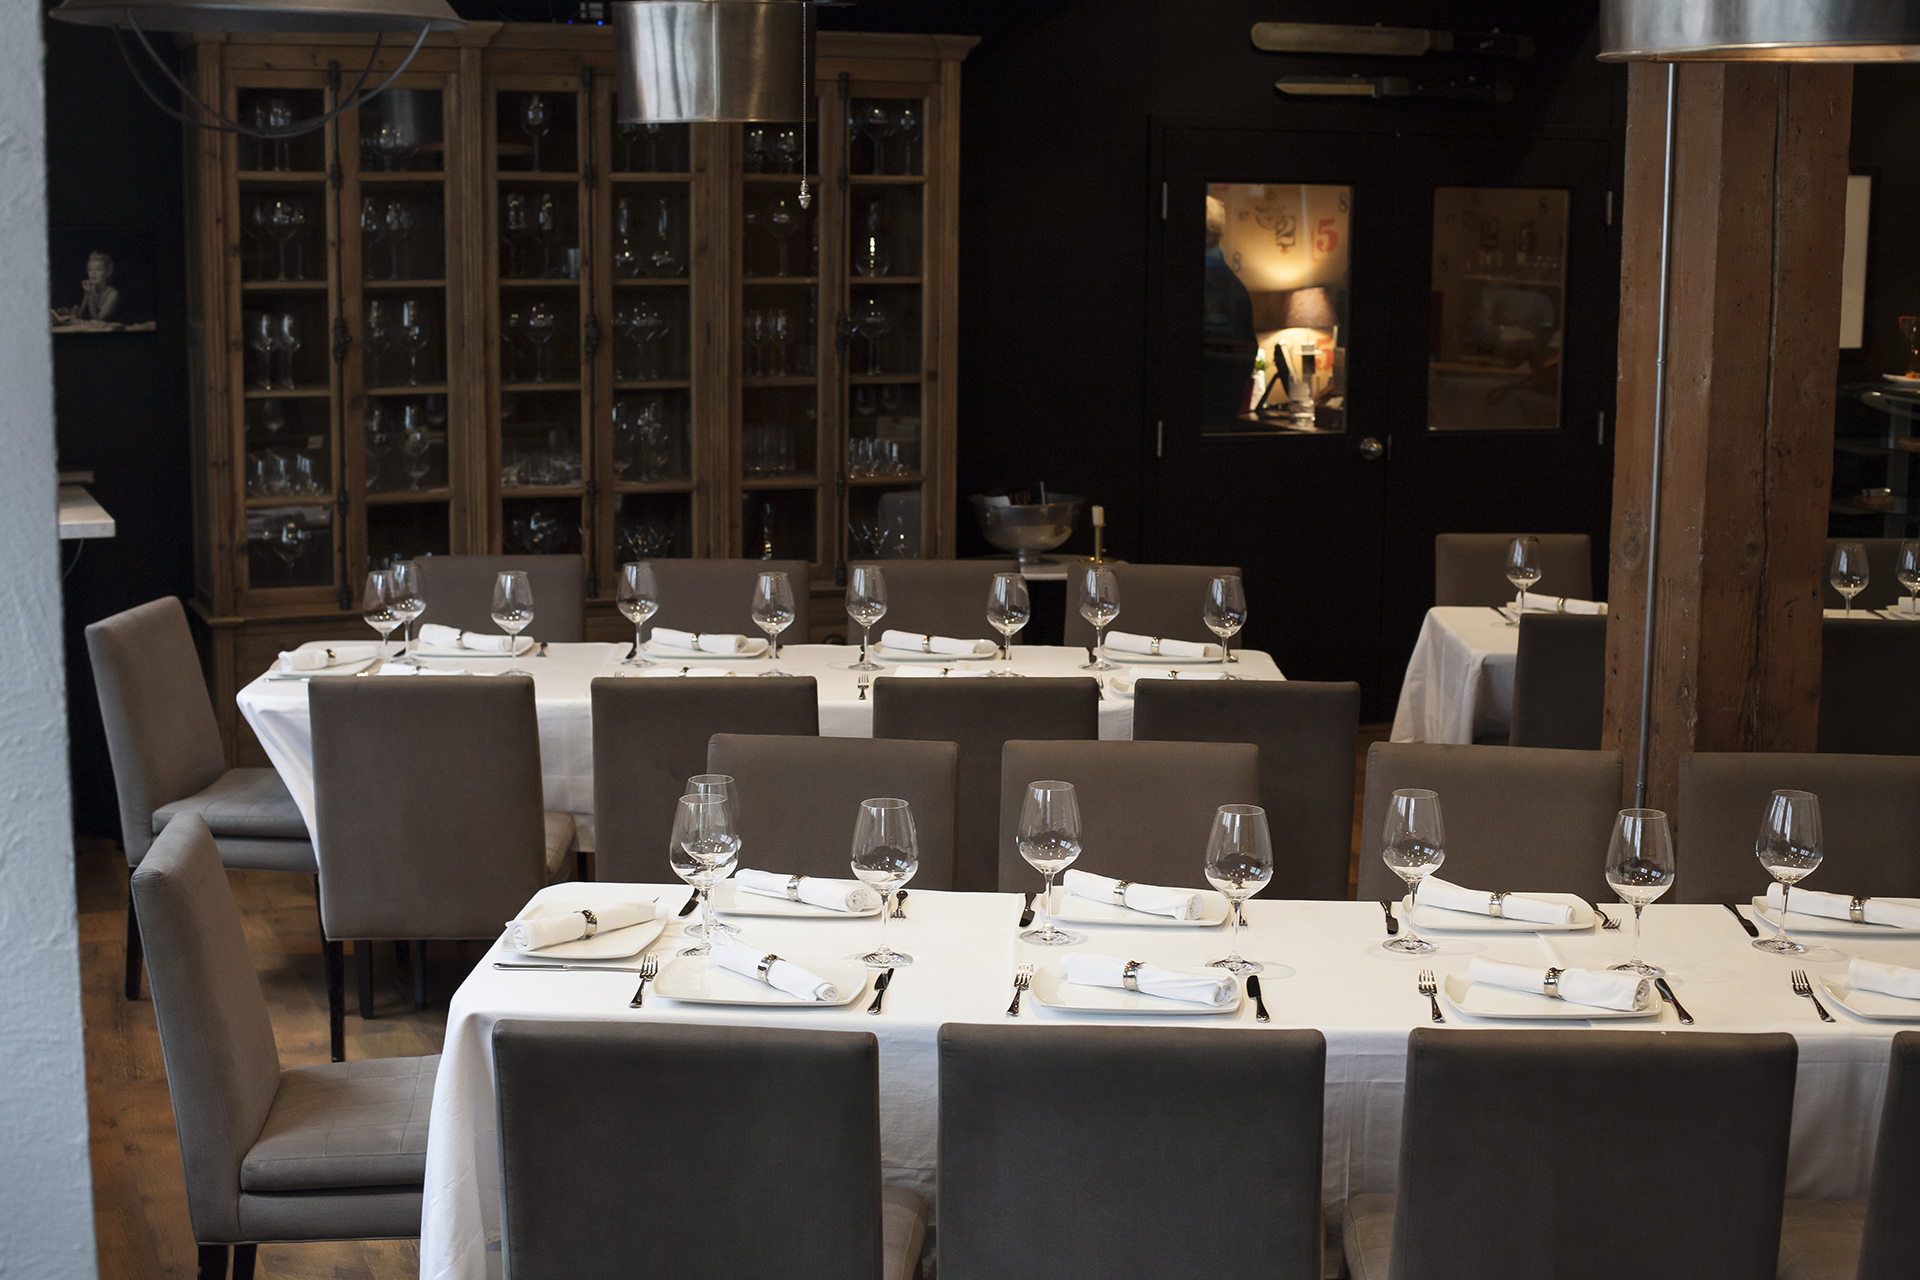 Small Wedding Venues Toronto - Private Dining Room - Intimate Wedding Reception - Group Dinner Event